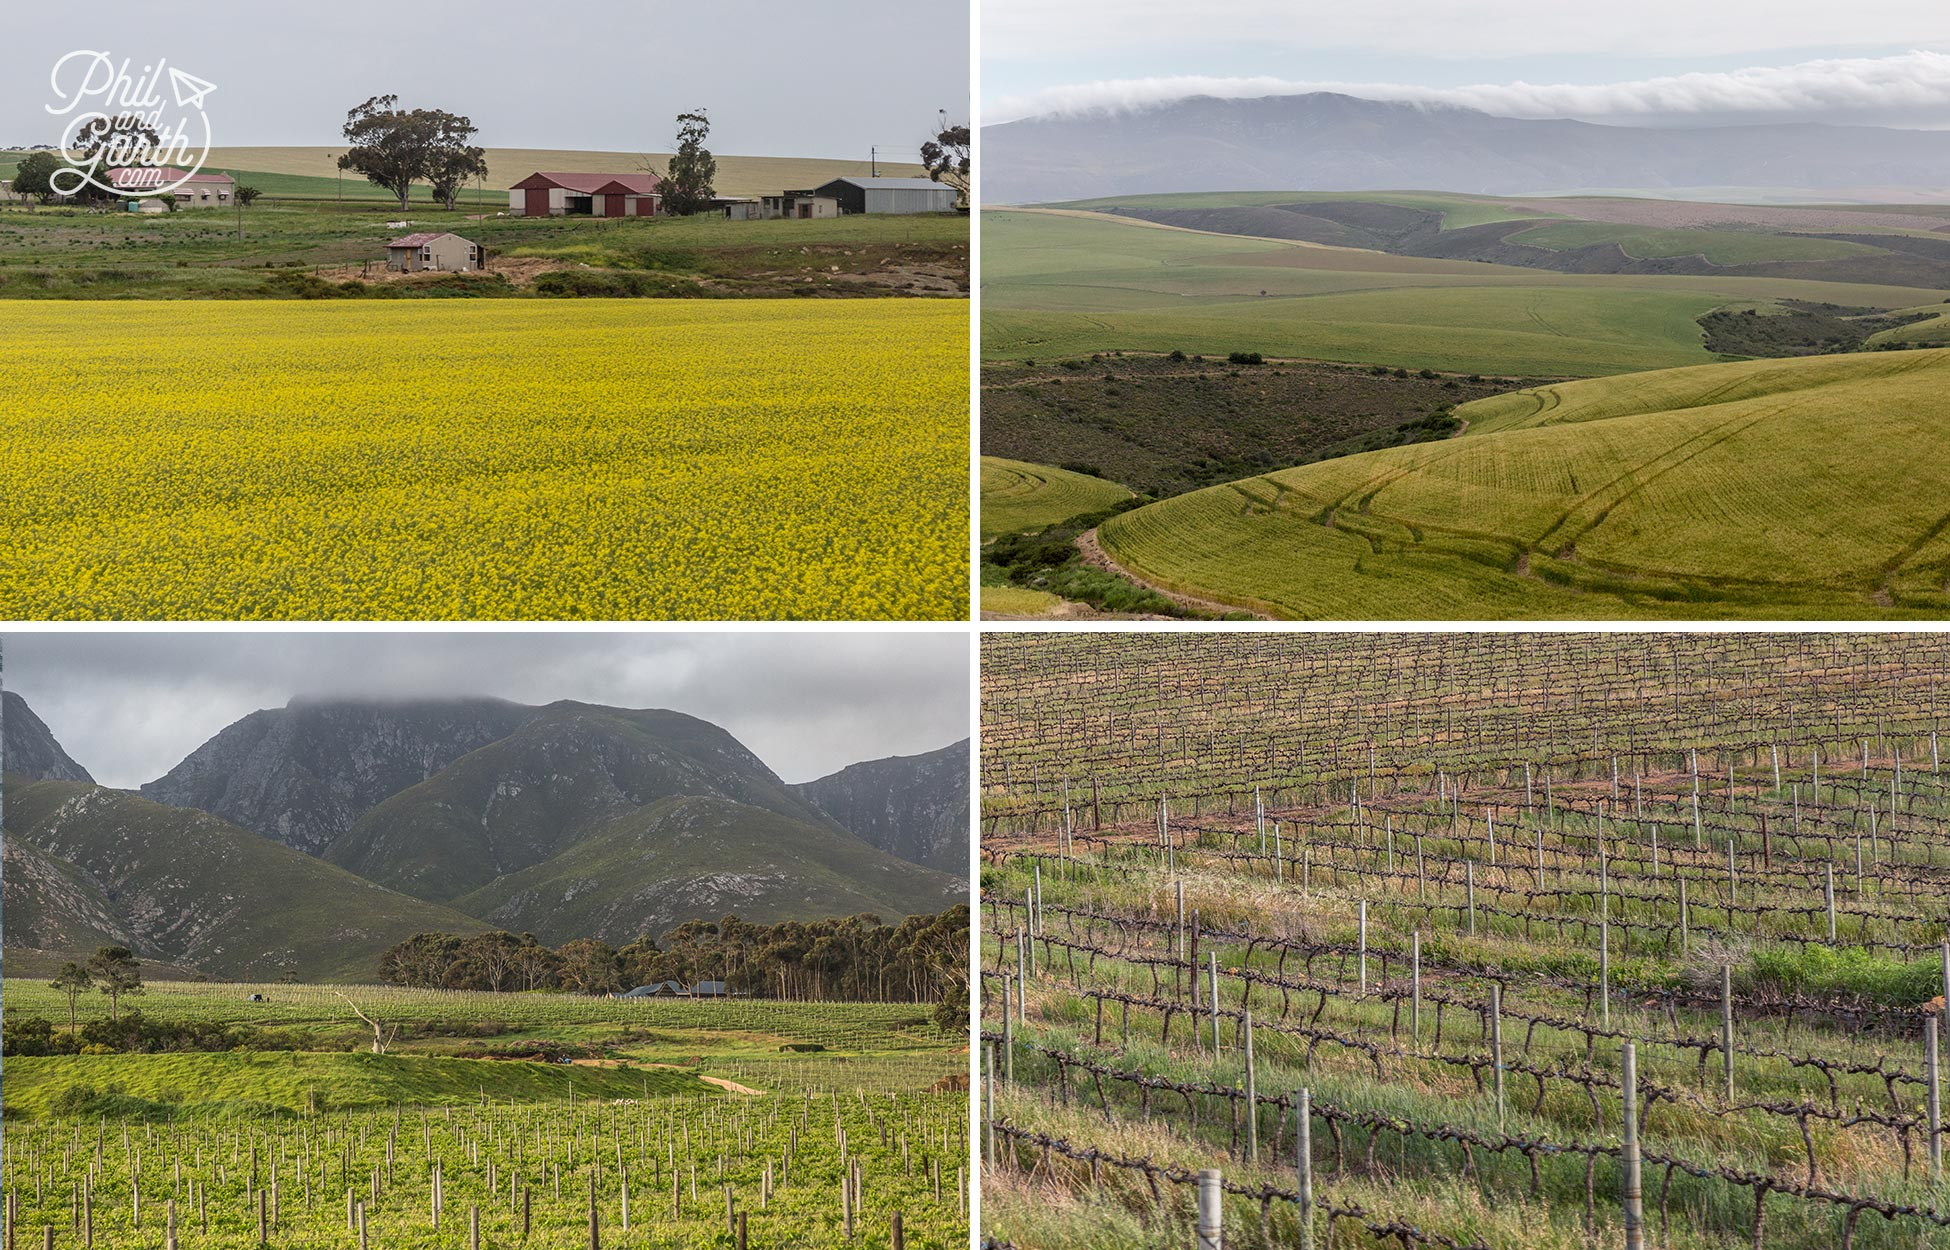 Passing vineyards and canola fields on the way to Hermanus